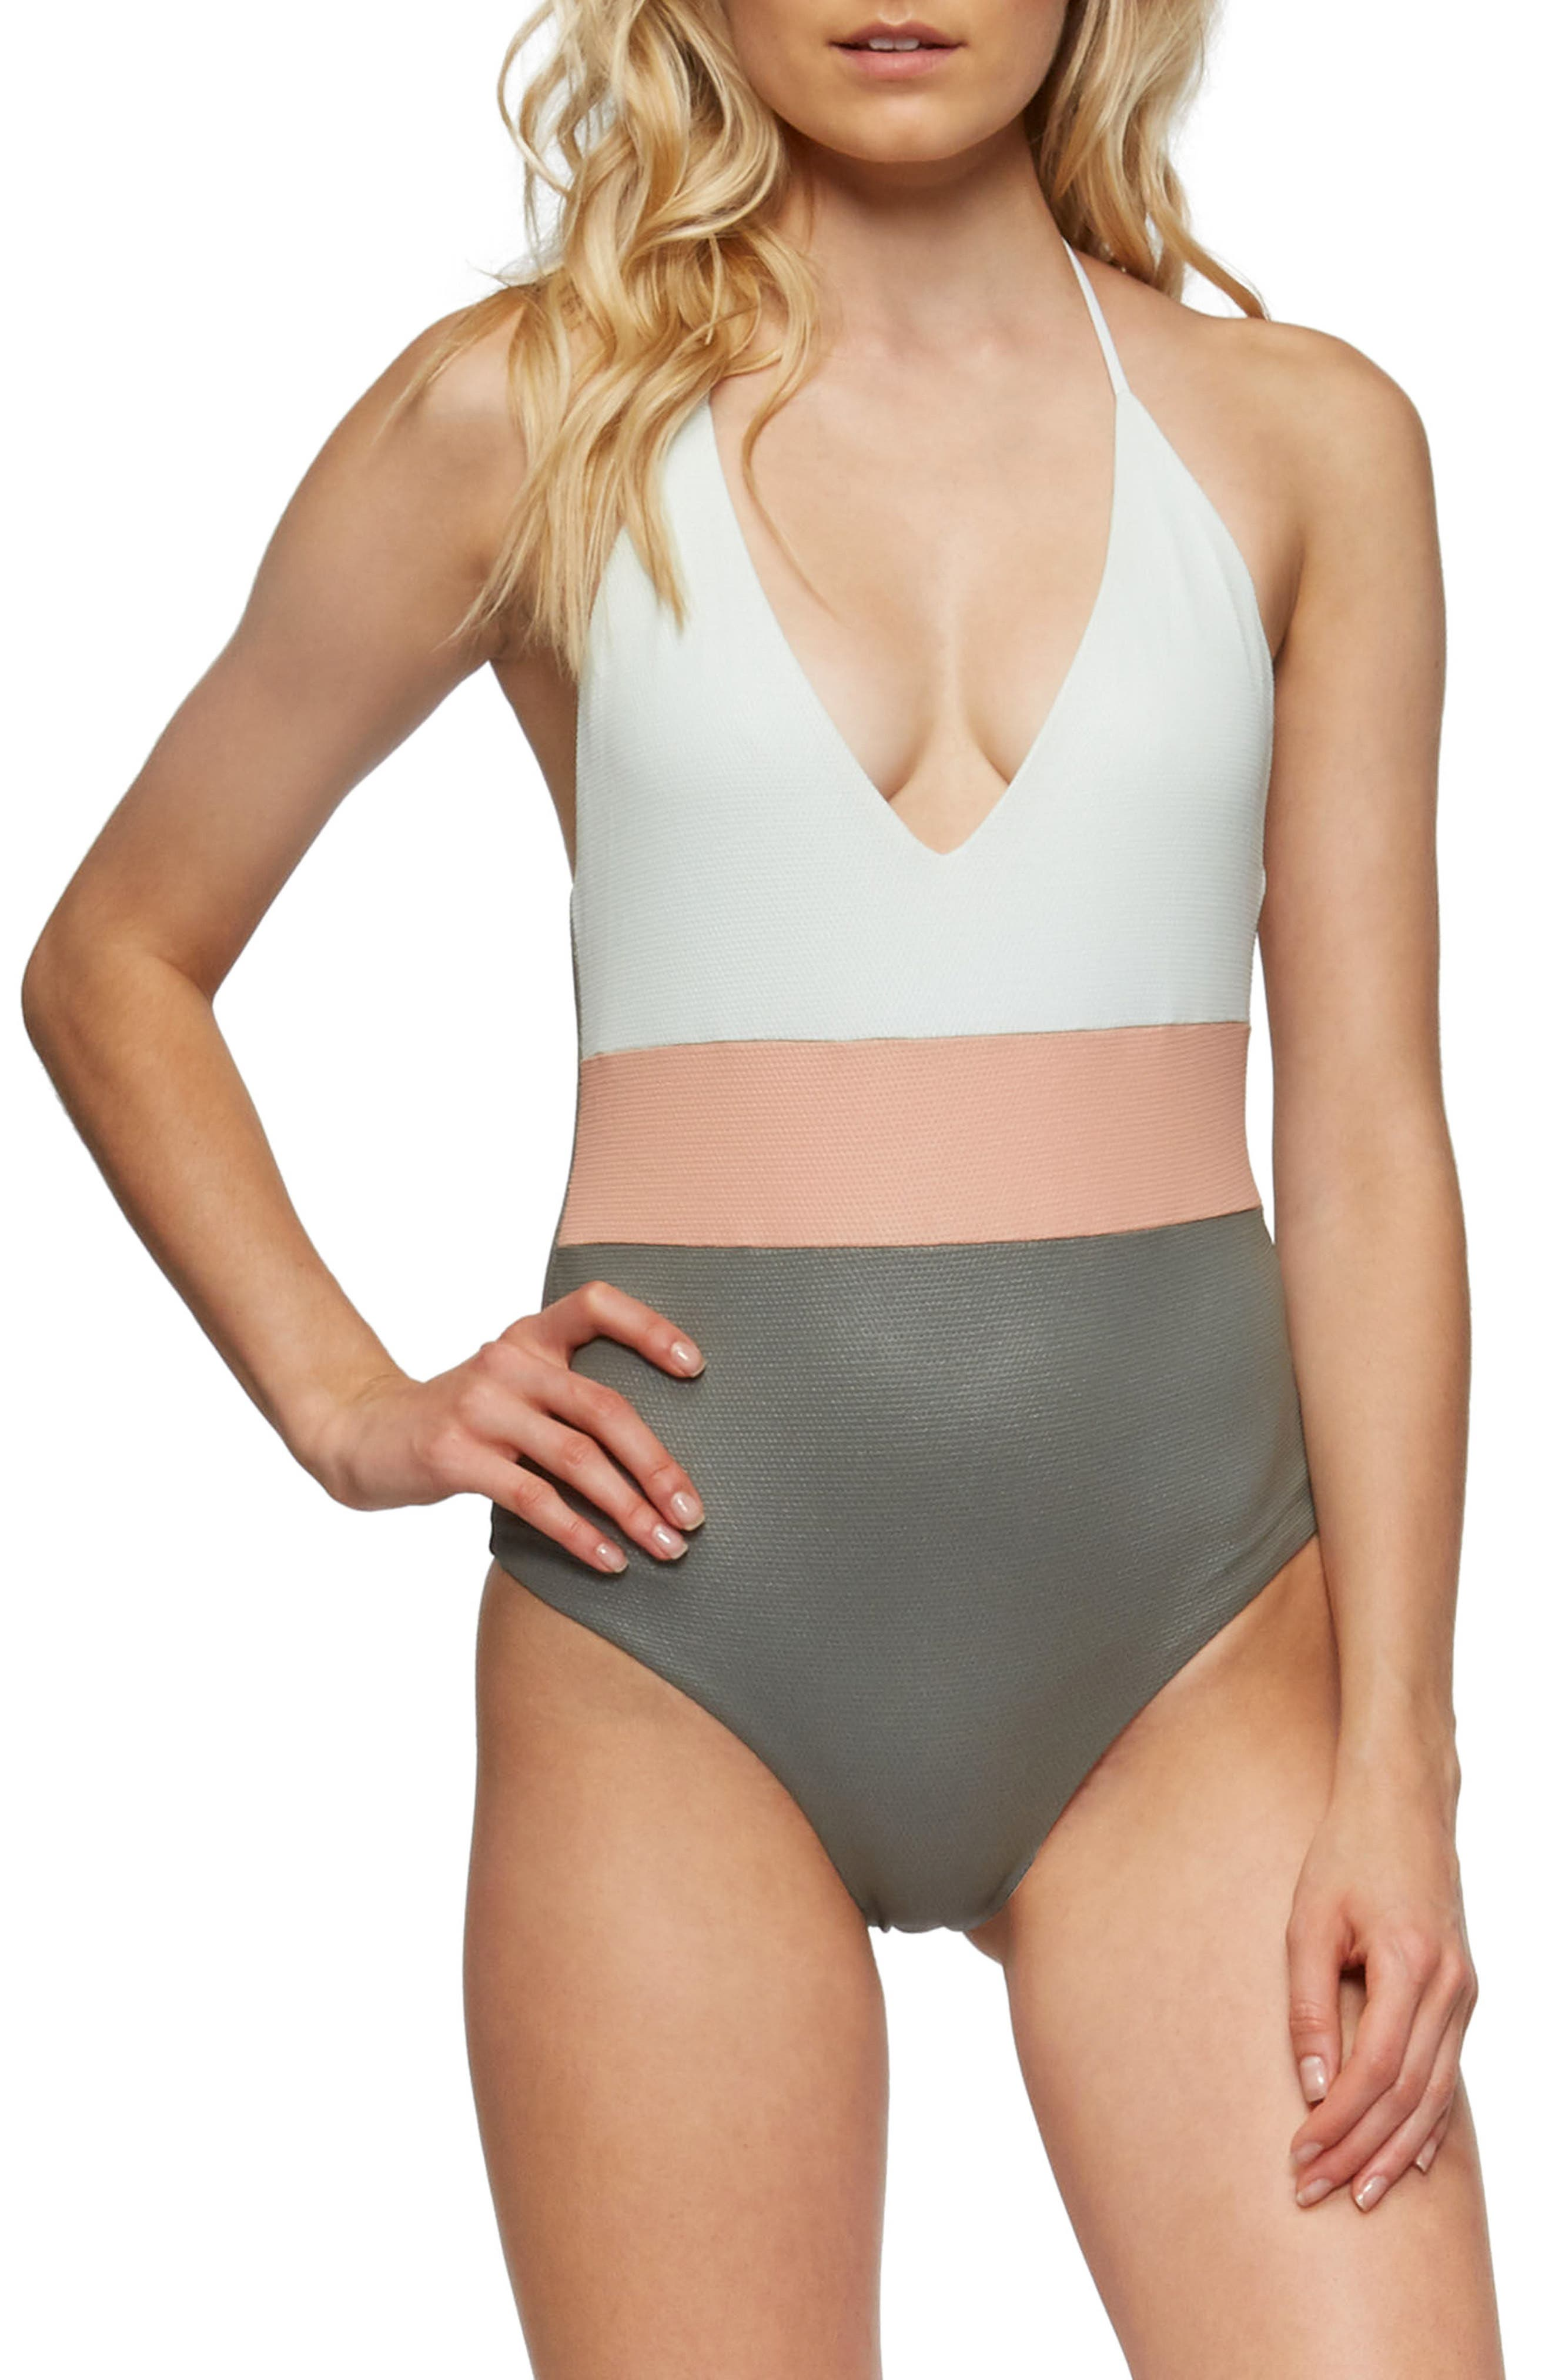 Chase Glossy One-Piece Swimsuit,                         Main,                         color, Cove Grey